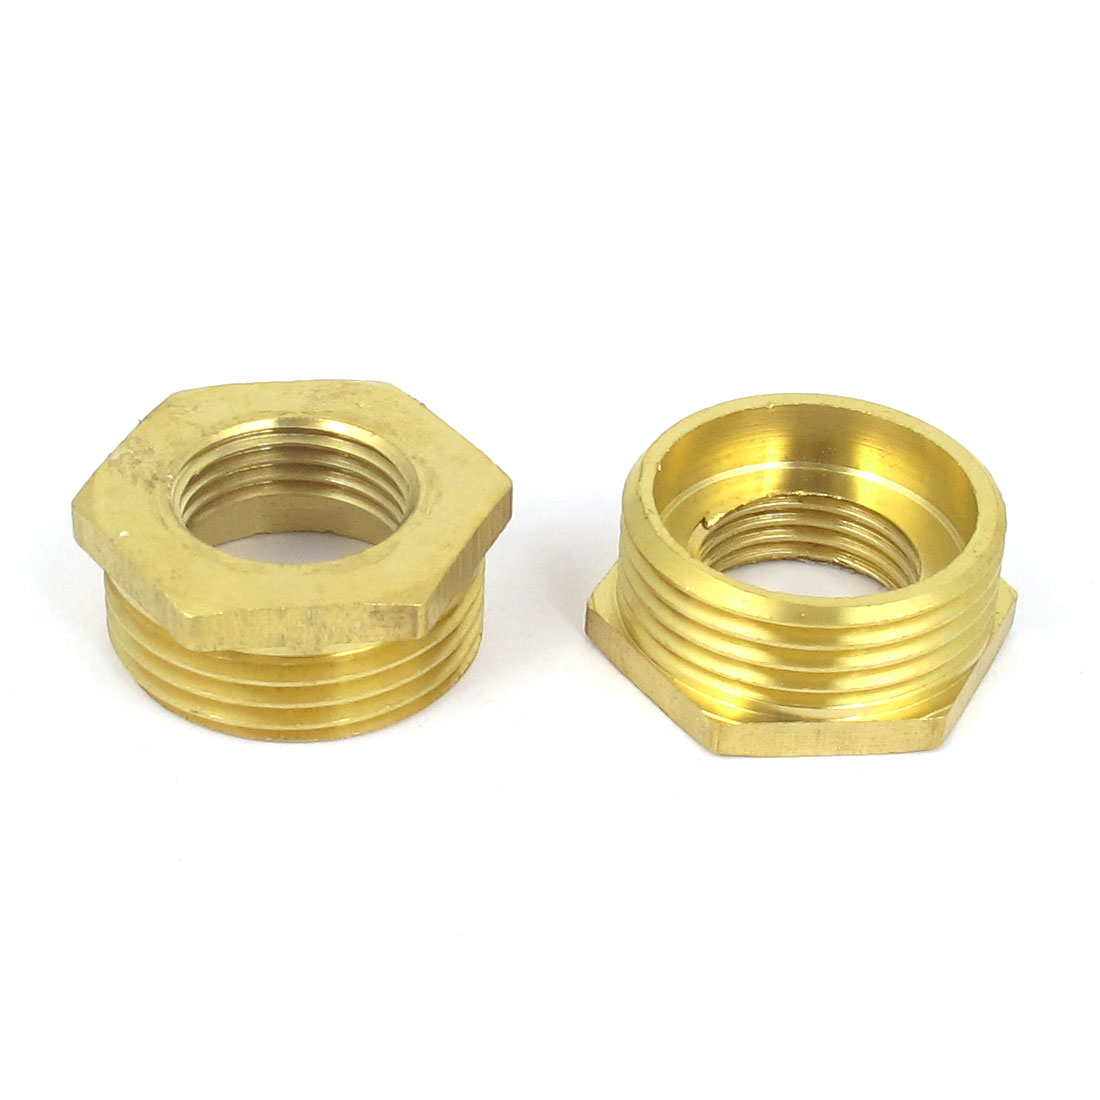 Gold Tone 1BSP x 1/2BSP F/M Thread Brass Hex Reducing Bushing Fitting 2pcs